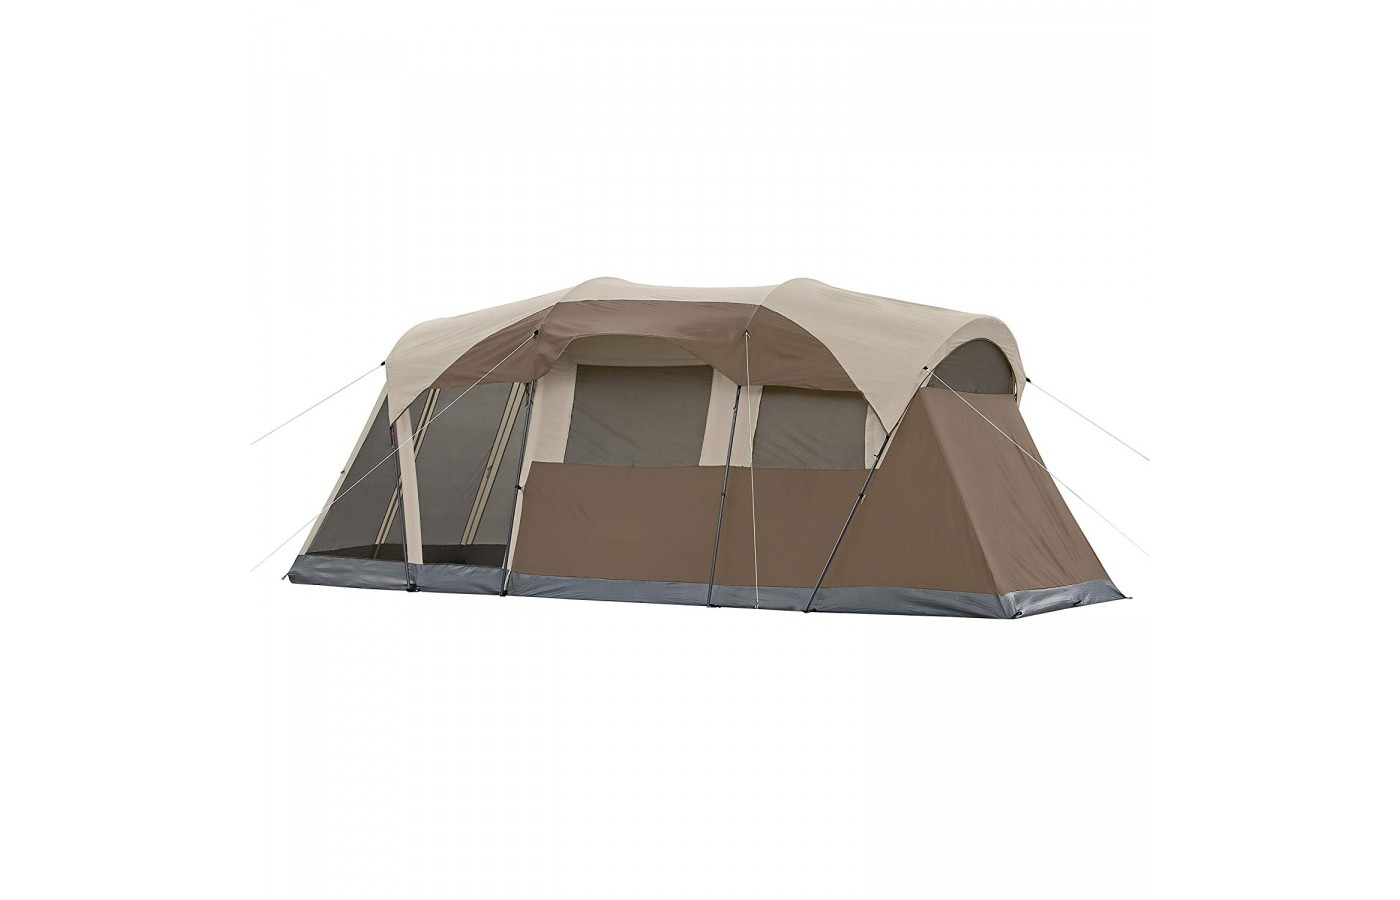 The Coleman Weathermaster offers a 68-denier polyester mesh inner tent for protection from rain and wind.